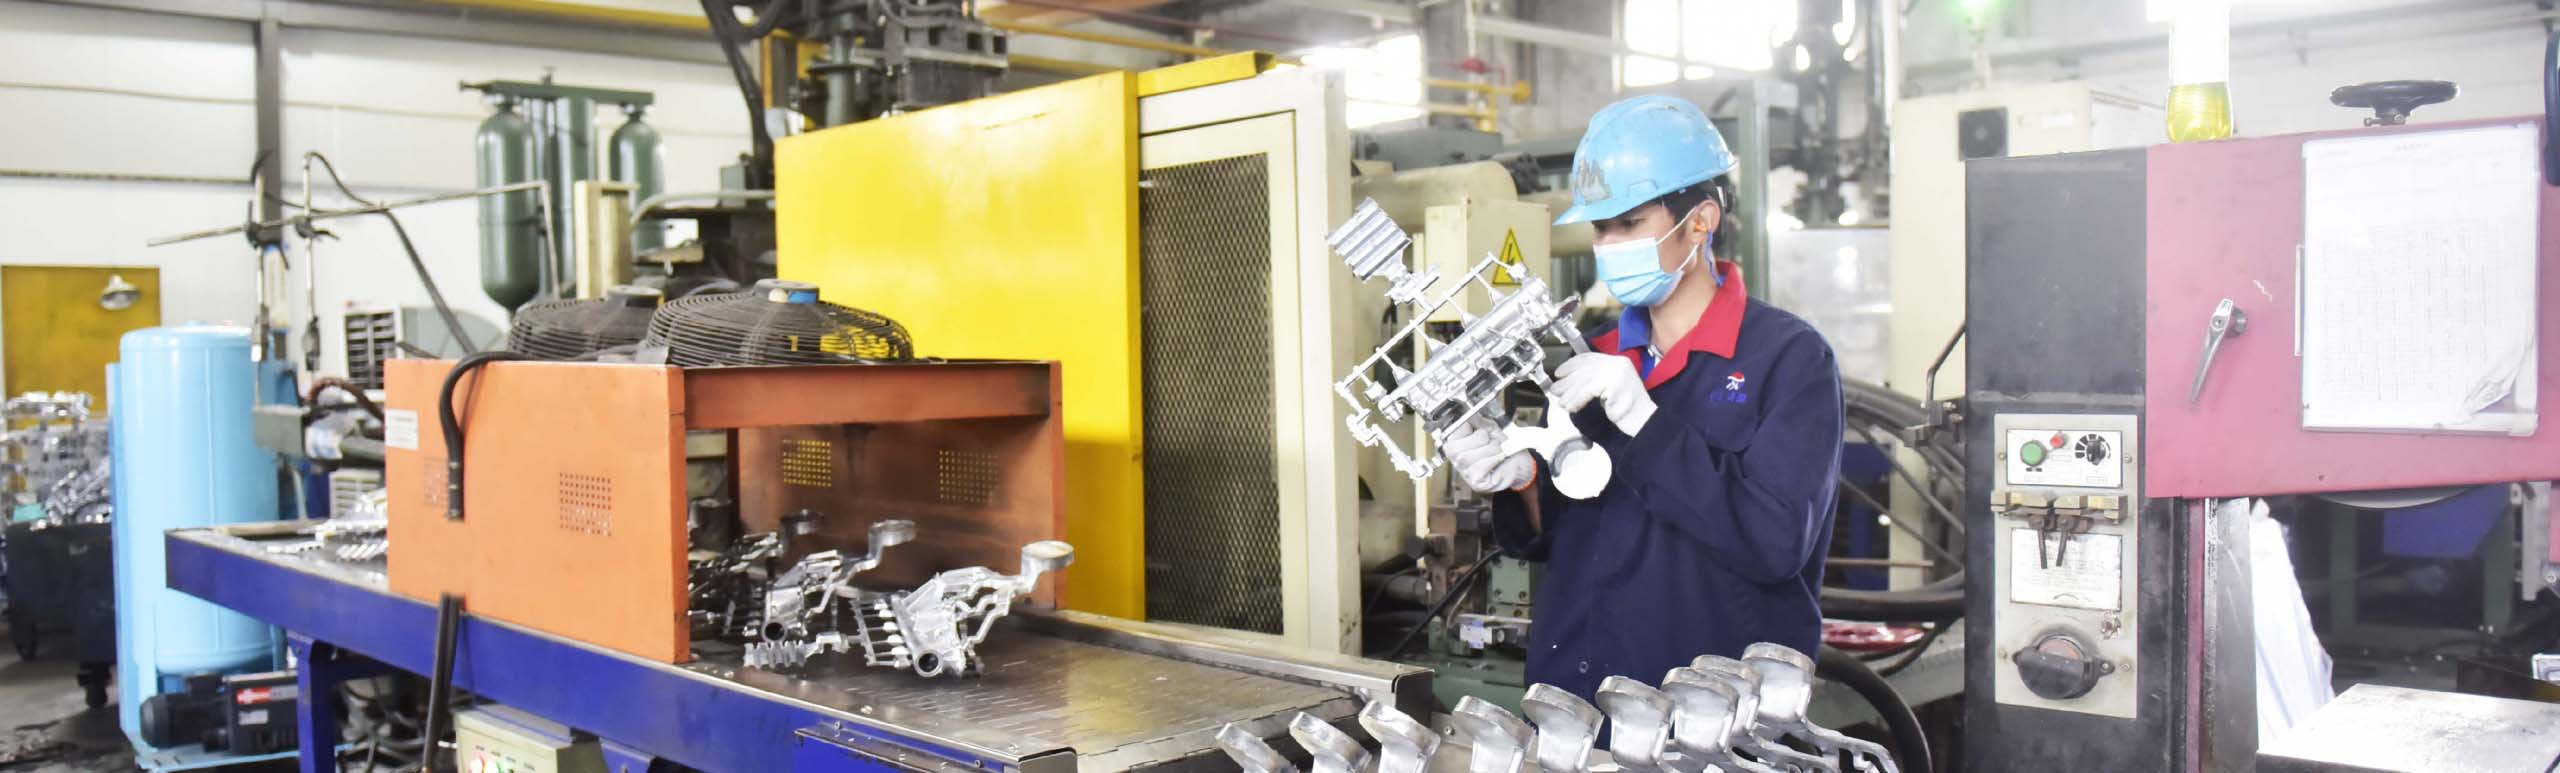 High Pressure Die Casting Process in Sunrise's workshop